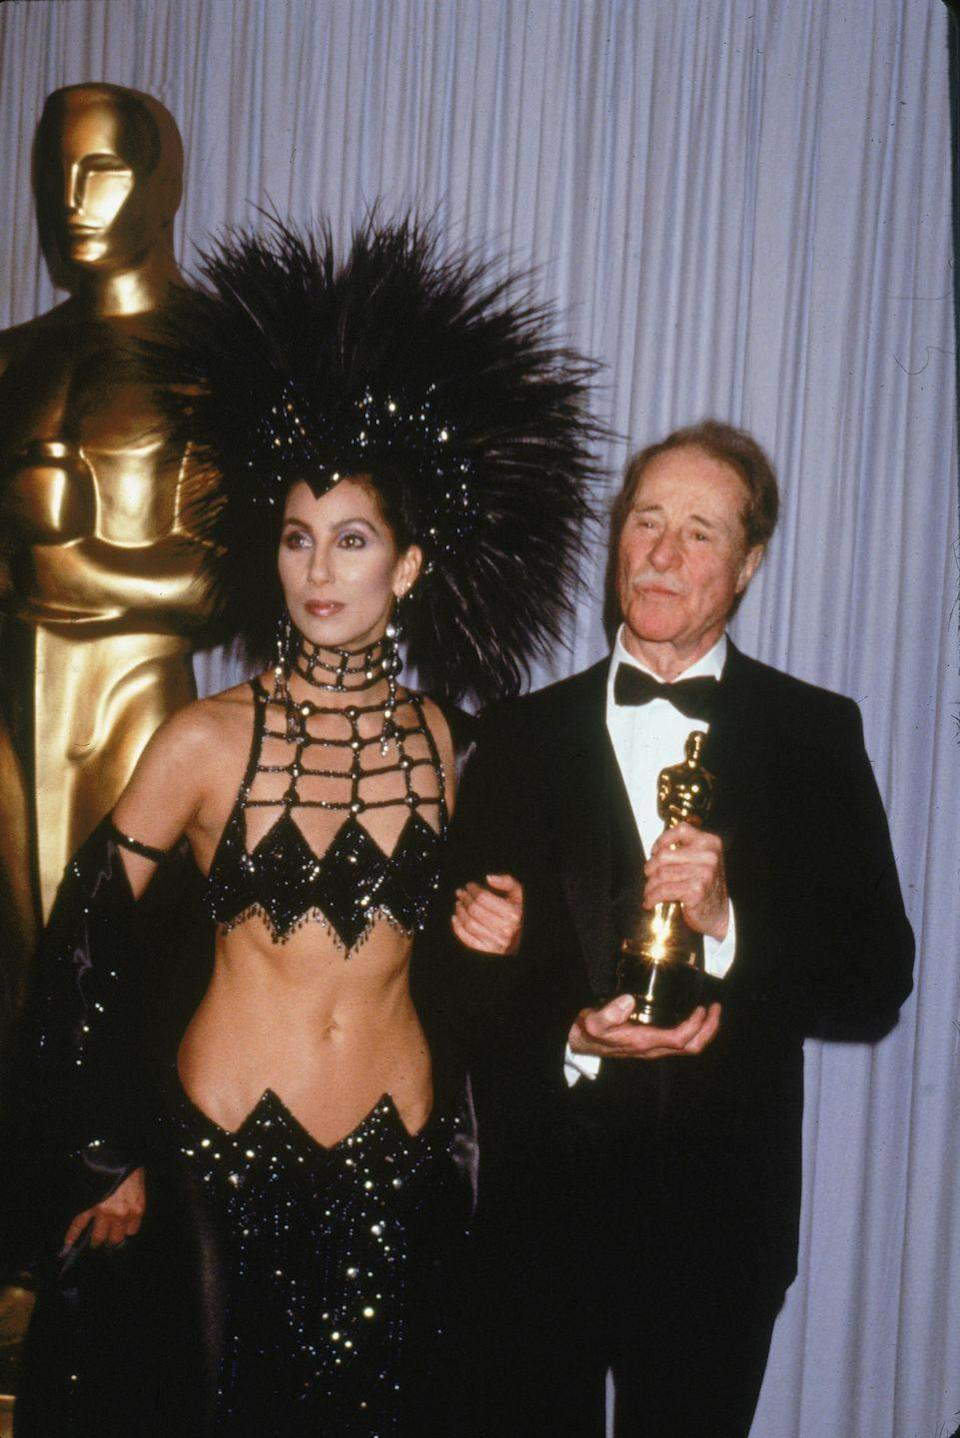 """<p>Even if she hadn't won the Oscar for her role in <em><a href=""""https://www.amazon.com/Moonstruck-Cher/dp/B07JCGMLMD/ref=sr_1_1?s=instant-video&ie=UTF8&qid=1547582767&sr=1-1&keywords=Moonstruck&tag=syn-yahoo-20&ascsubtag=%5Bartid%7C10055.g.5148%5Bsrc%7Cyahoo-us"""" rel=""""nofollow noopener"""" target=""""_blank"""" data-ylk=""""slk:Moonstruck"""" class=""""link rapid-noclick-resp"""">Moonstruck</a></em><span class=""""redactor-invisible-space"""">, <a href=""""http://oscar.go.com/photos/2017/unforgettable-fashion-moments/cher-1986"""" rel=""""nofollow noopener"""" target=""""_blank"""" data-ylk=""""slk:Cher still would've stolen the show"""" class=""""link rapid-noclick-resp"""">Cher still would've stolen the show</a> in this <a href=""""https://www.goodhousekeeping.com/beauty/fashion/g4208/oscars-red-carpet-fashion-fails/"""" rel=""""nofollow noopener"""" target=""""_blank"""" data-ylk=""""slk:custom Bob Mackie dress"""" class=""""link rapid-noclick-resp"""">custom Bob Mackie dress</a>. Of course, she topped it with a huge feathered headdress. But believe it or not, it wasn't even the most revealing outfit at the 1986 Oscars ... </span></p><p><span class=""""redactor-invisible-space""""><strong>RELATED:</strong> <a href=""""https://www.goodhousekeeping.com/health/diet-nutrition/a44341/what-cher-eats-in-a-day/"""" rel=""""nofollow noopener"""" target=""""_blank"""" data-ylk=""""slk:What Cher Eats in a Day to Look So Fit"""" class=""""link rapid-noclick-resp"""">What Cher Eats in a Day to Look So Fit</a><br></span></p>"""